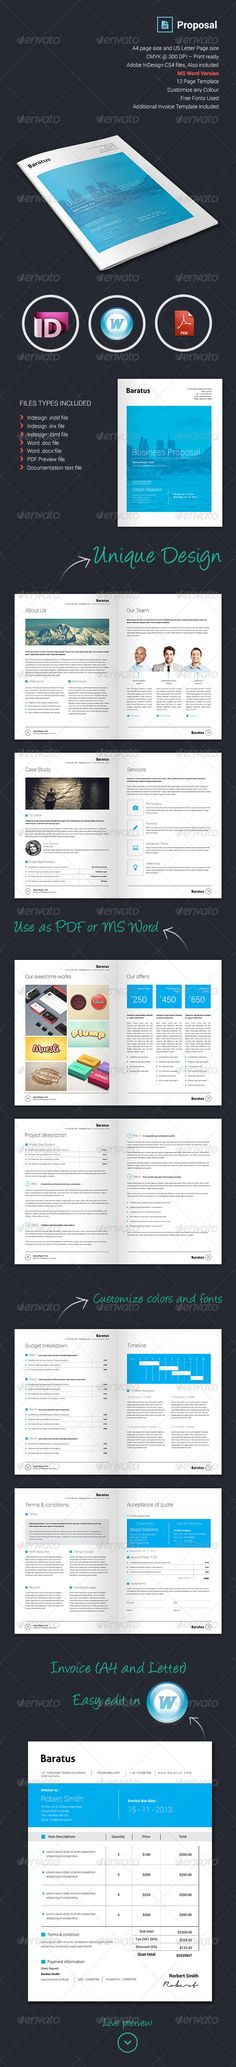 Business PROPOSAL Business proposal, Proposals and Stationery - microsoft office proposal templates